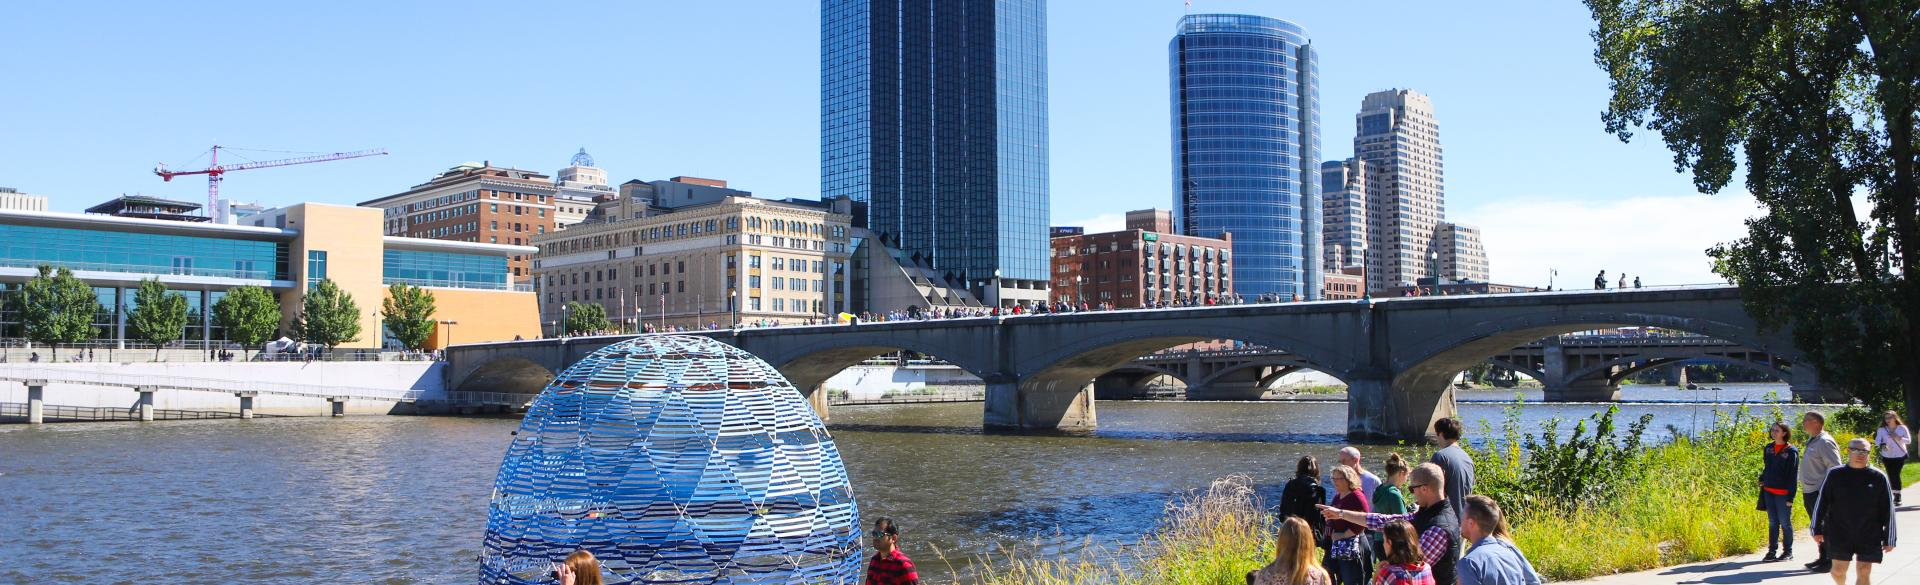 ArtPrize, an international art competition, was founded by Rick DeVos, grandson of the late Richard and Helen DeVos. Pictured is the piece Harvest Dome 3.0 by SLO Architecture at ArtPrize 2018.